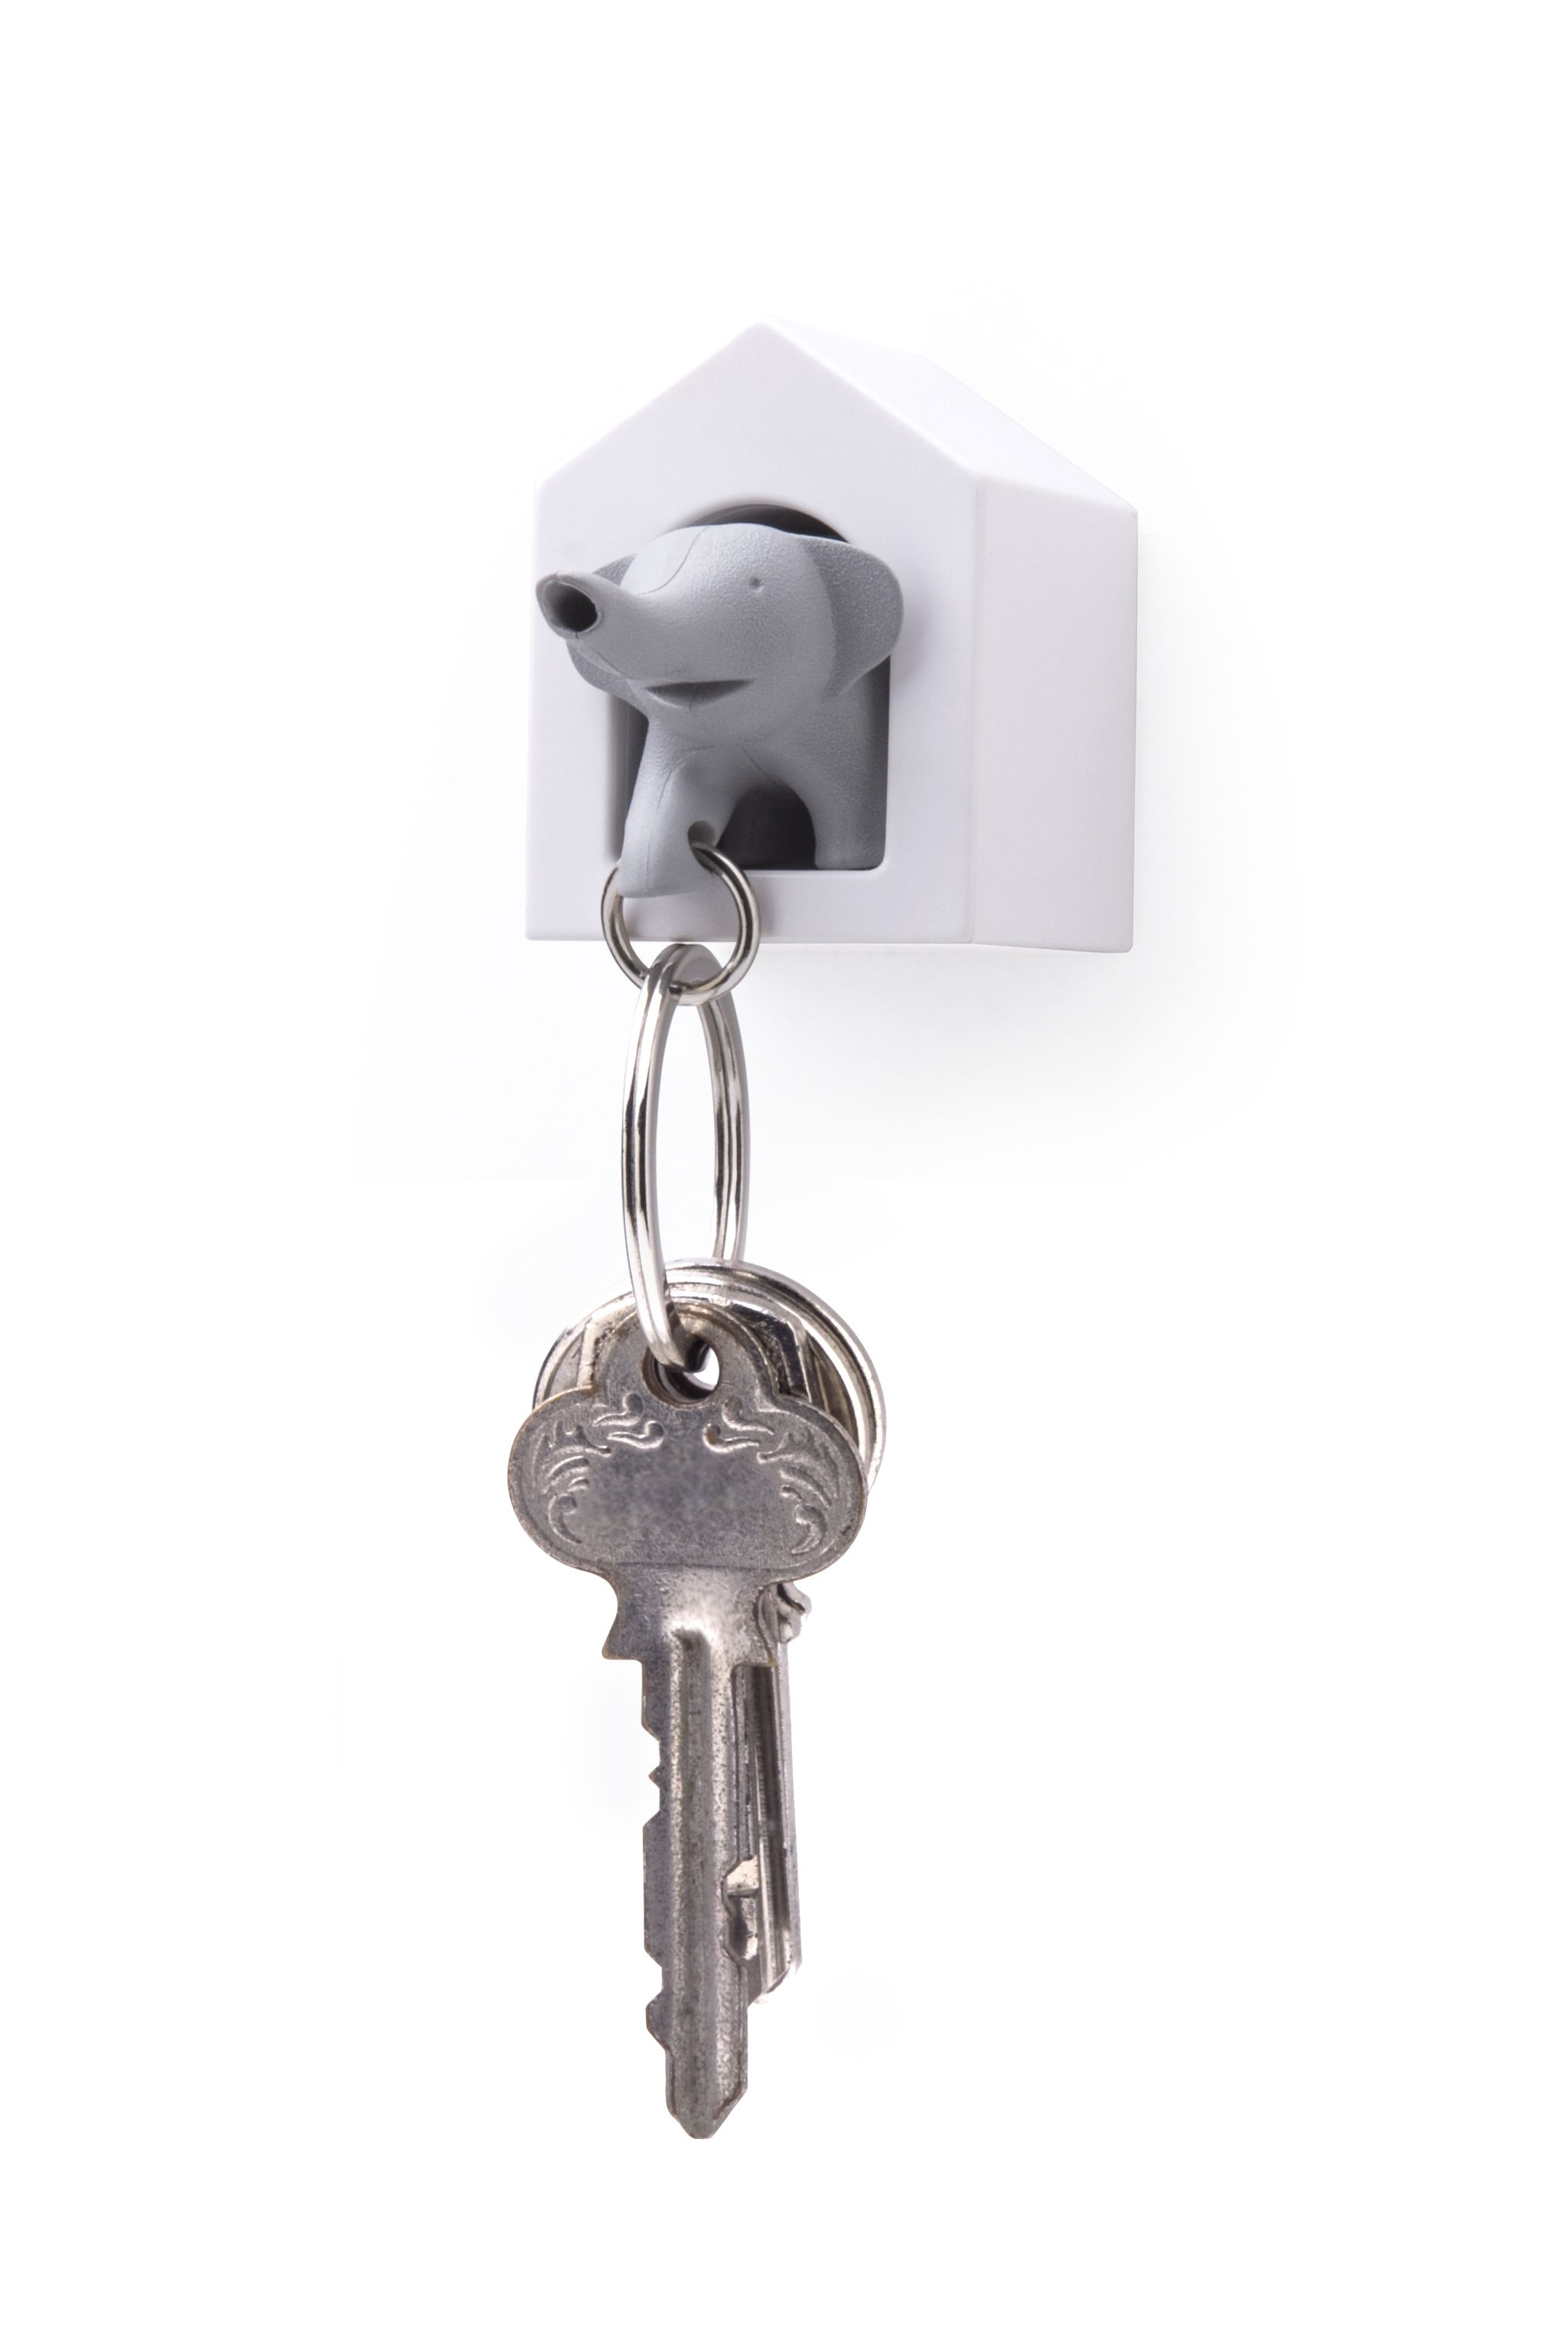 He will guard your keys everywhere and he will never let go. He also functions as a whistle in case of emergencies.